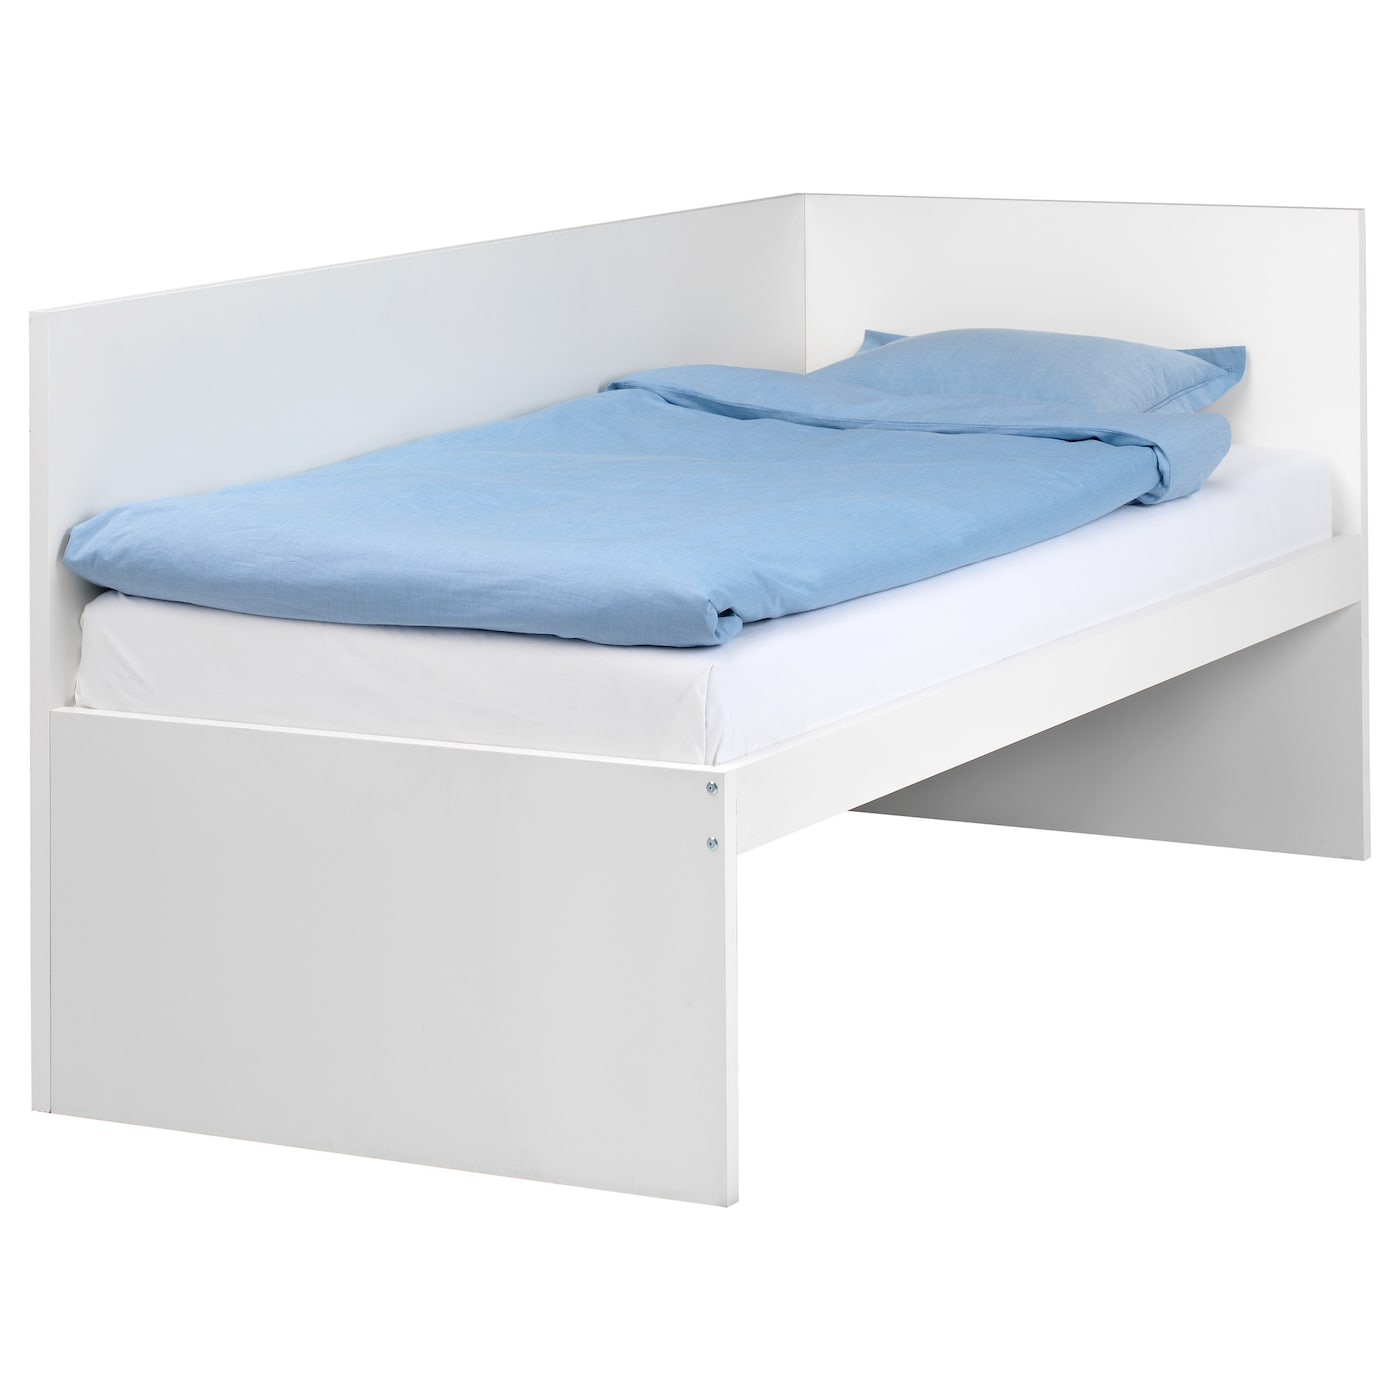 flaxa bed frm w headboard slatted bd base white 90x200 cm